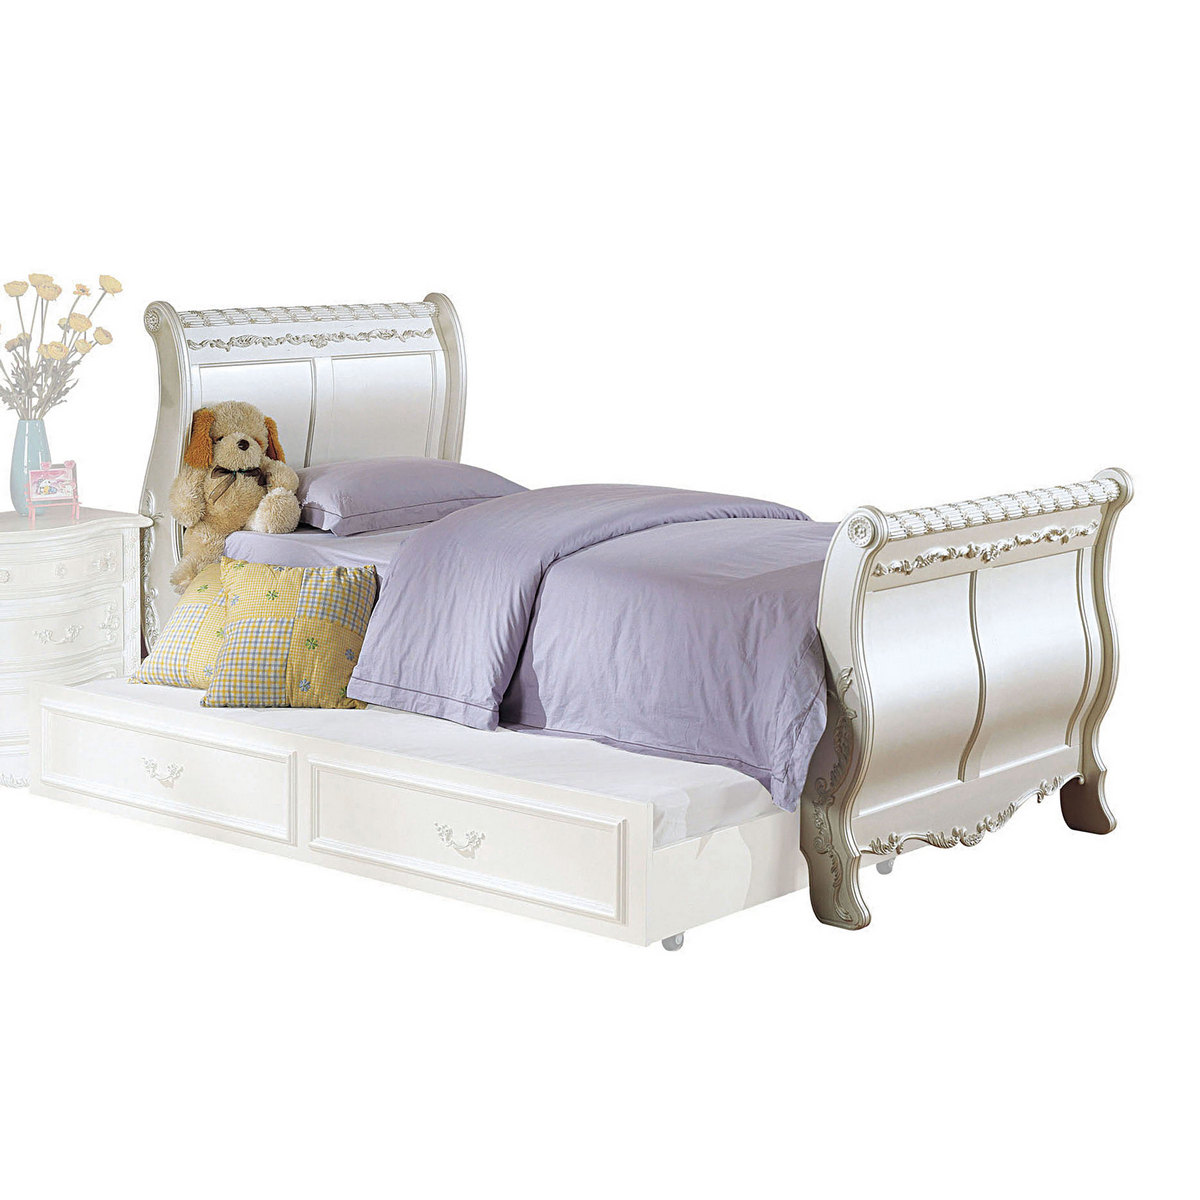 Acme Pearl Twin Bed Sleigh Pearl White Gold Brush Accent